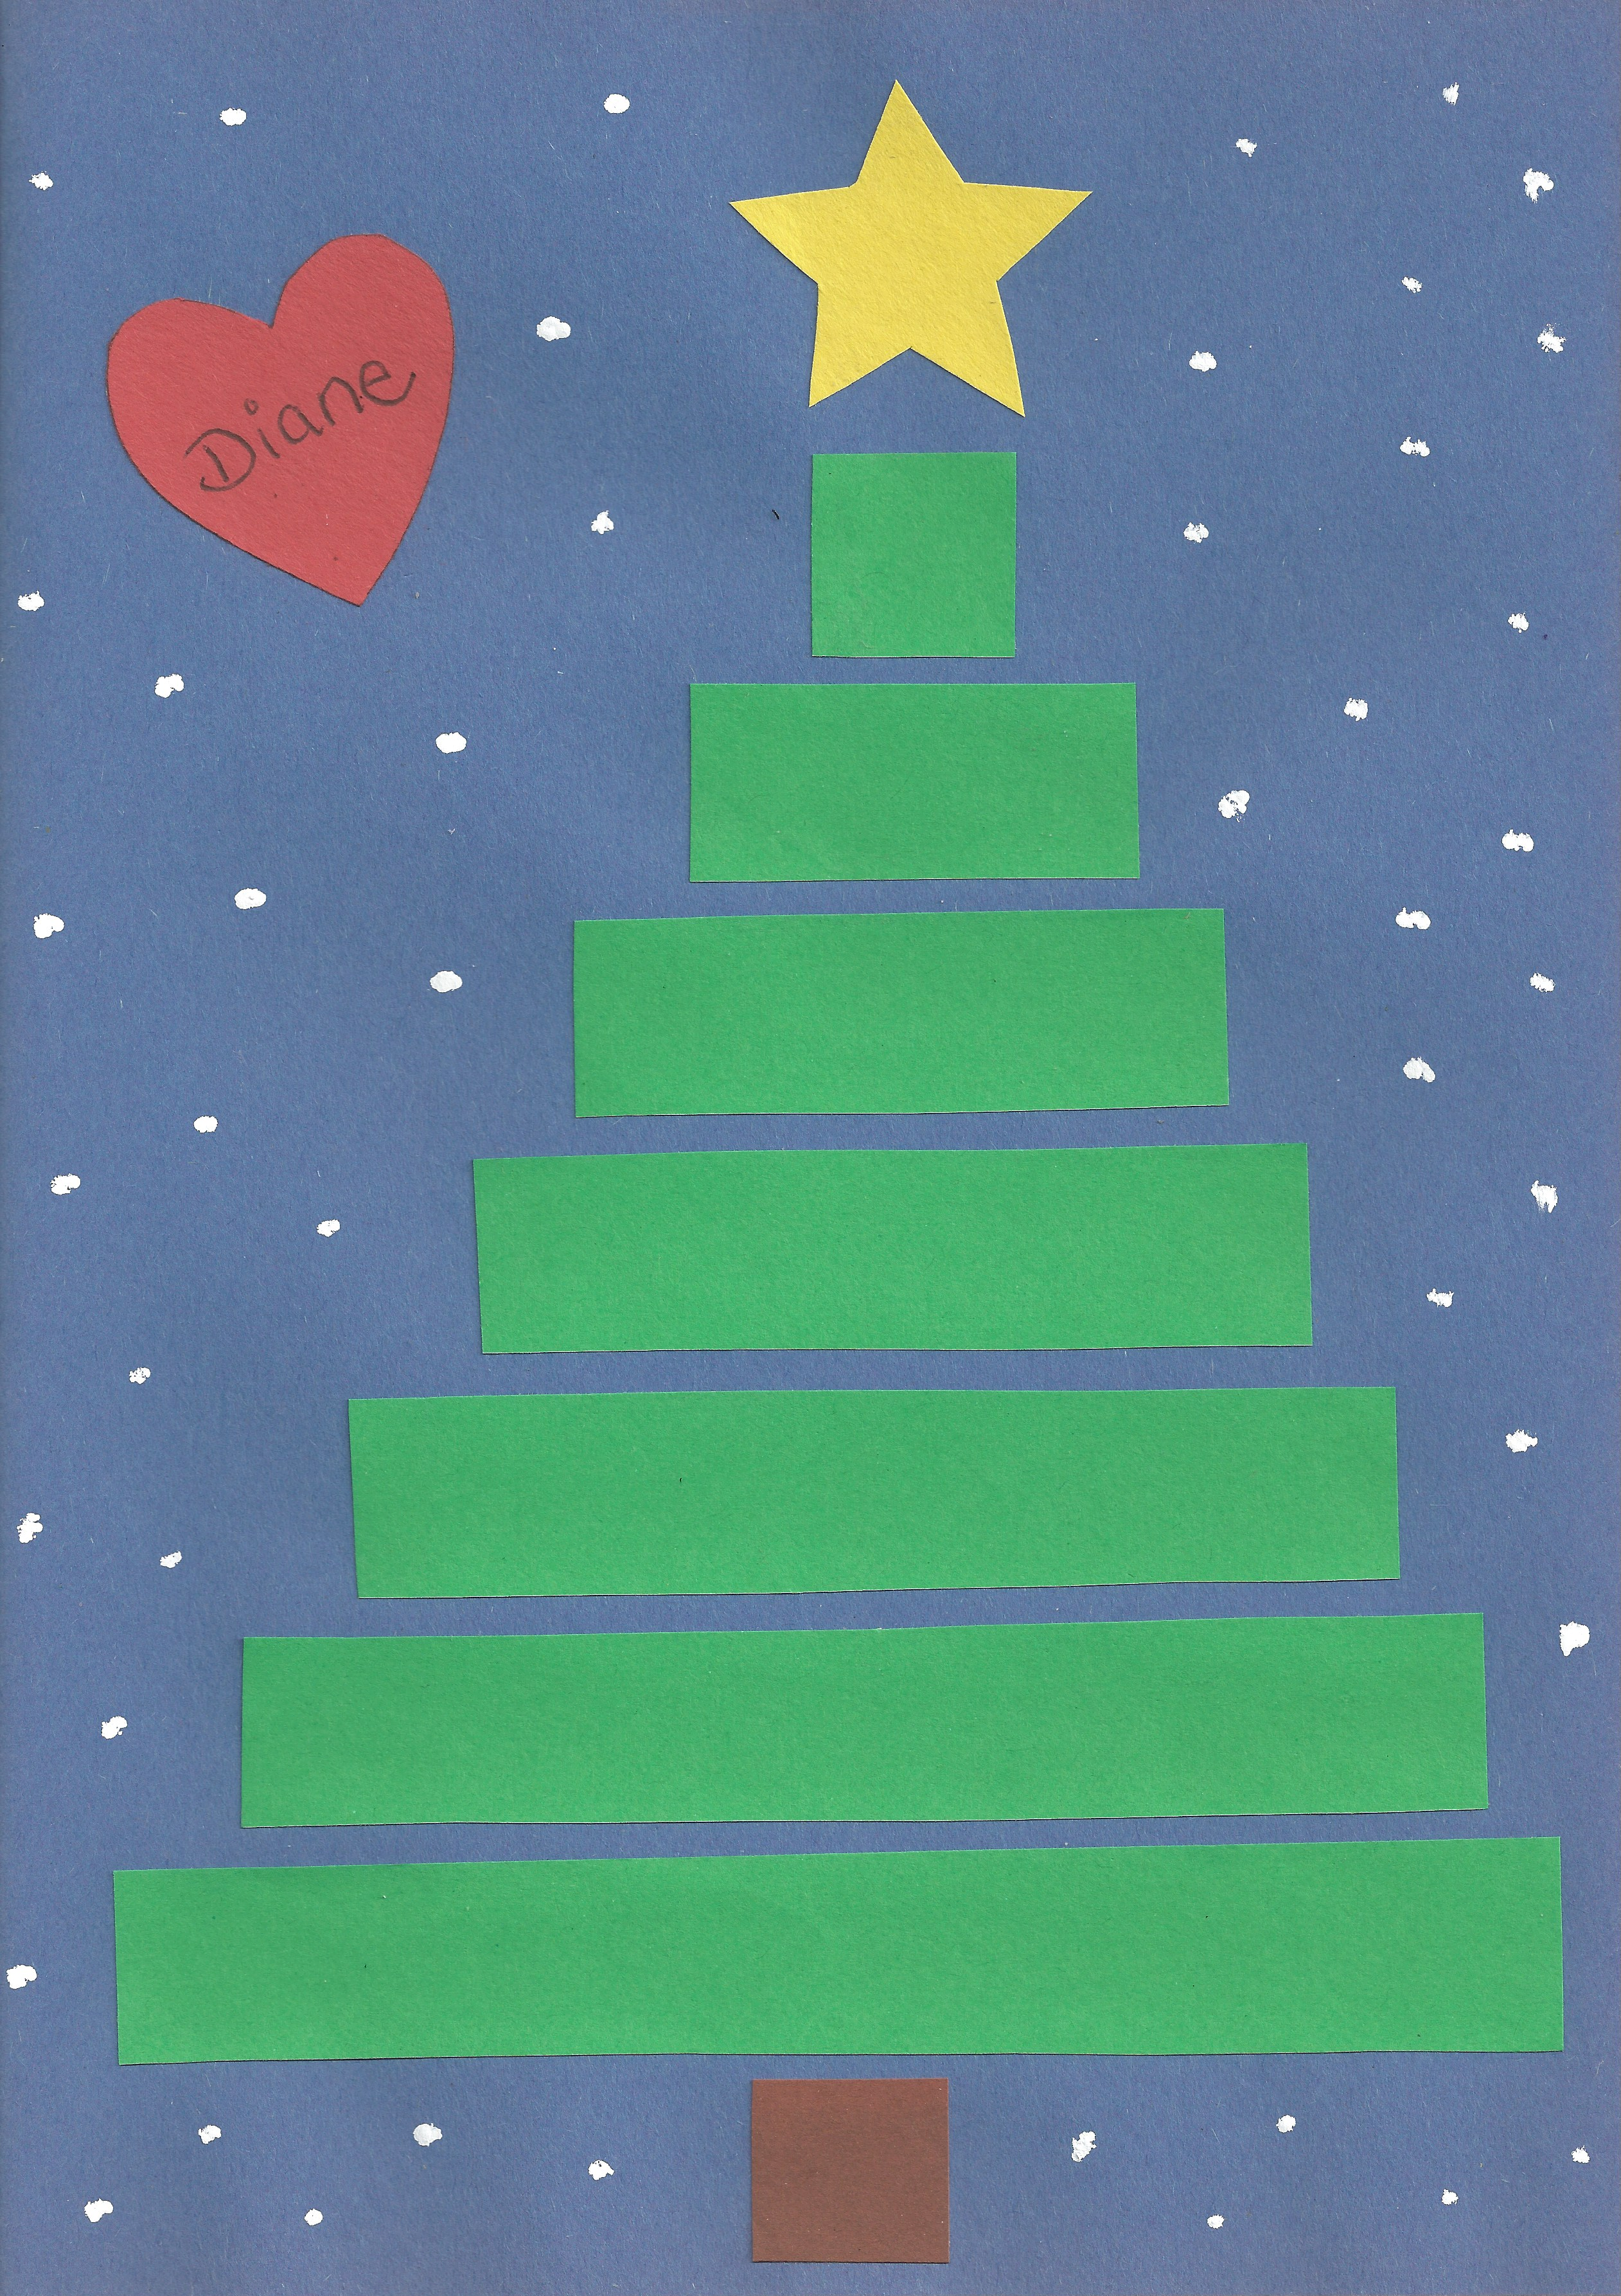 Christmas tree game, Christmas tree art work, December shapes, rectangle shape art project, December bulletin board ideas, December bulletin board, Christmas bulletin boards, Christmas tree bulletin board, dice games, math games, measurement game,